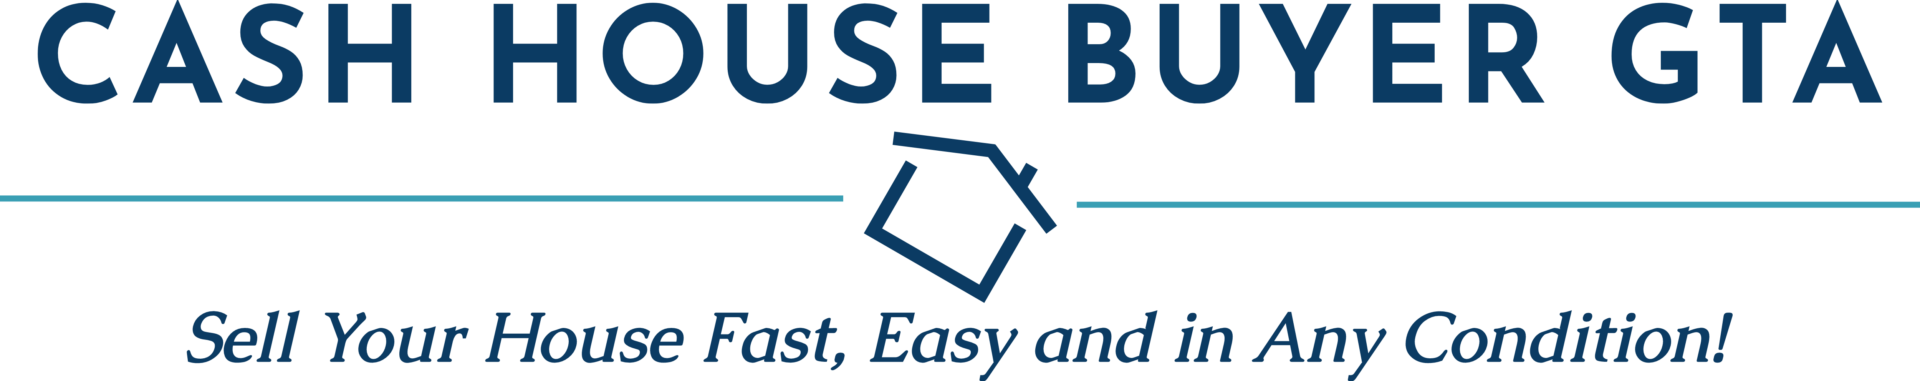 Cash House Buyer GTA logo